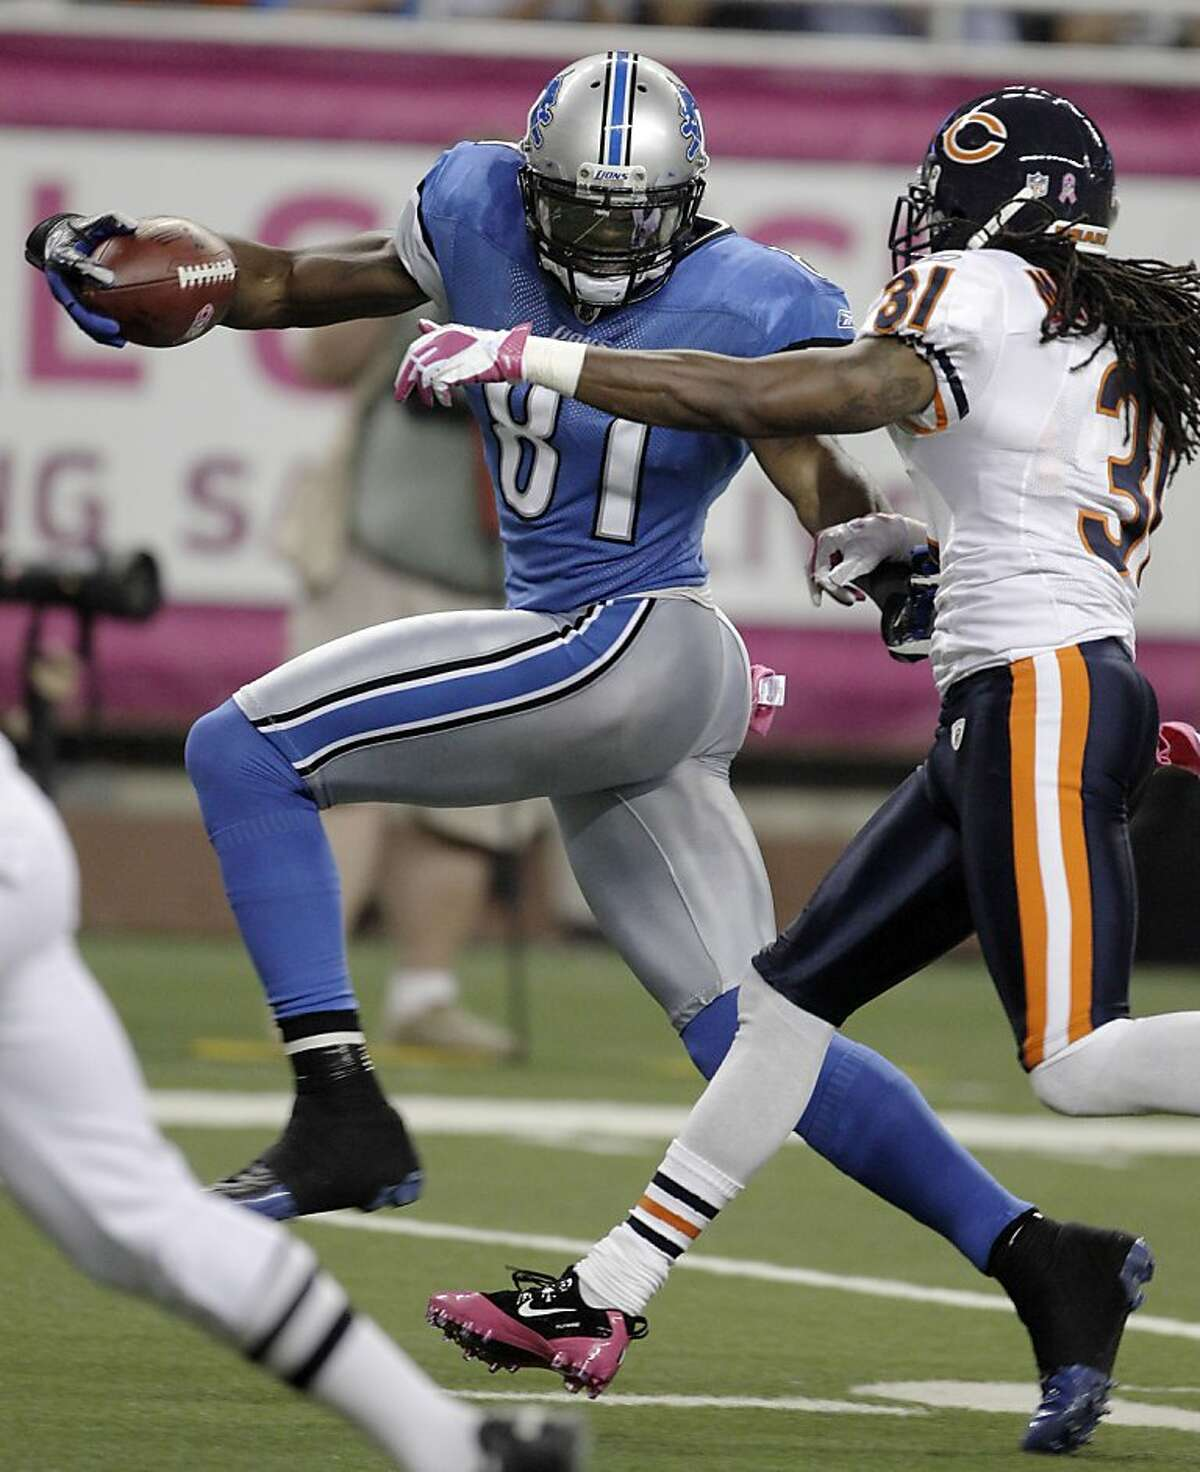 Detroit Lions wide receiver Calvin Johnson (81) pulls away from Chicago Bears free safety Brandon Meriweather (31) on a 73-yard touchdown reception during the second quarter of an NFL football game in Detroit, Monday, Oct. 10, 2011. (AP Photo/Carlos Osorio)